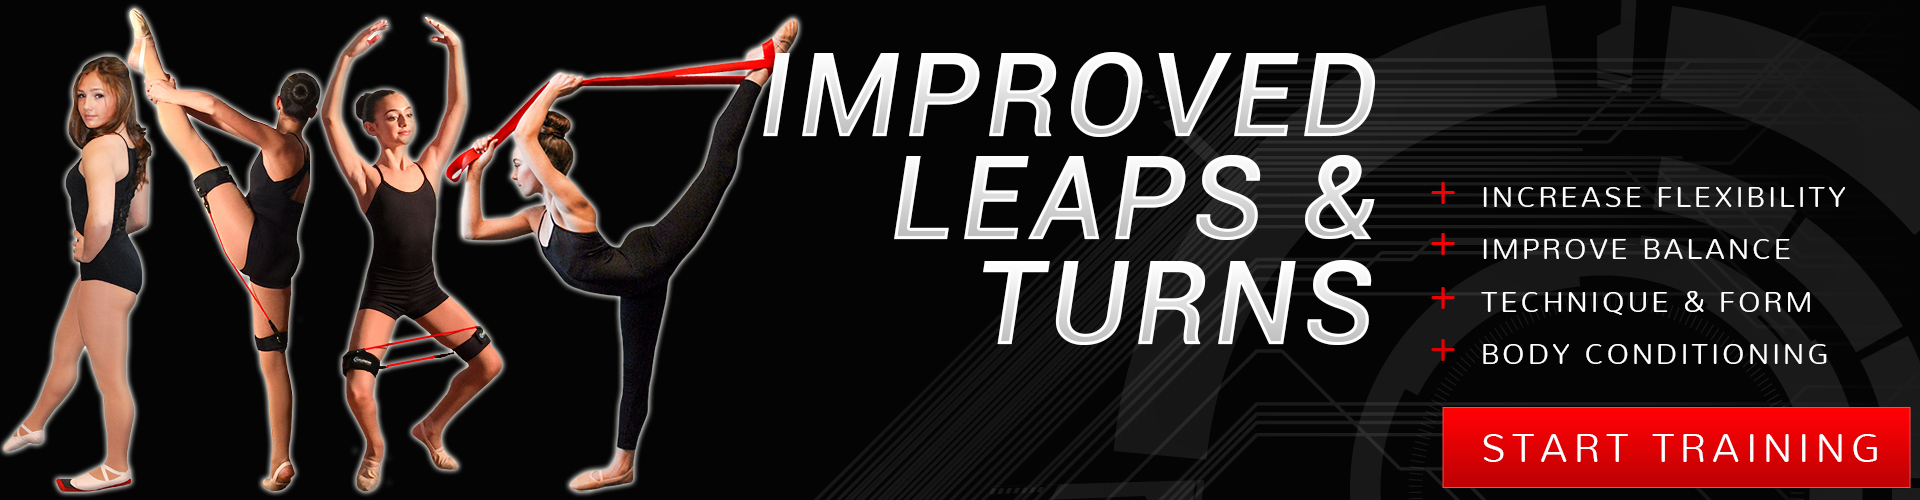 Improve leaps and turns in dance by increasing flexibility, improving balance, technique and form, and body conditioning by training with Kinetic Bands.